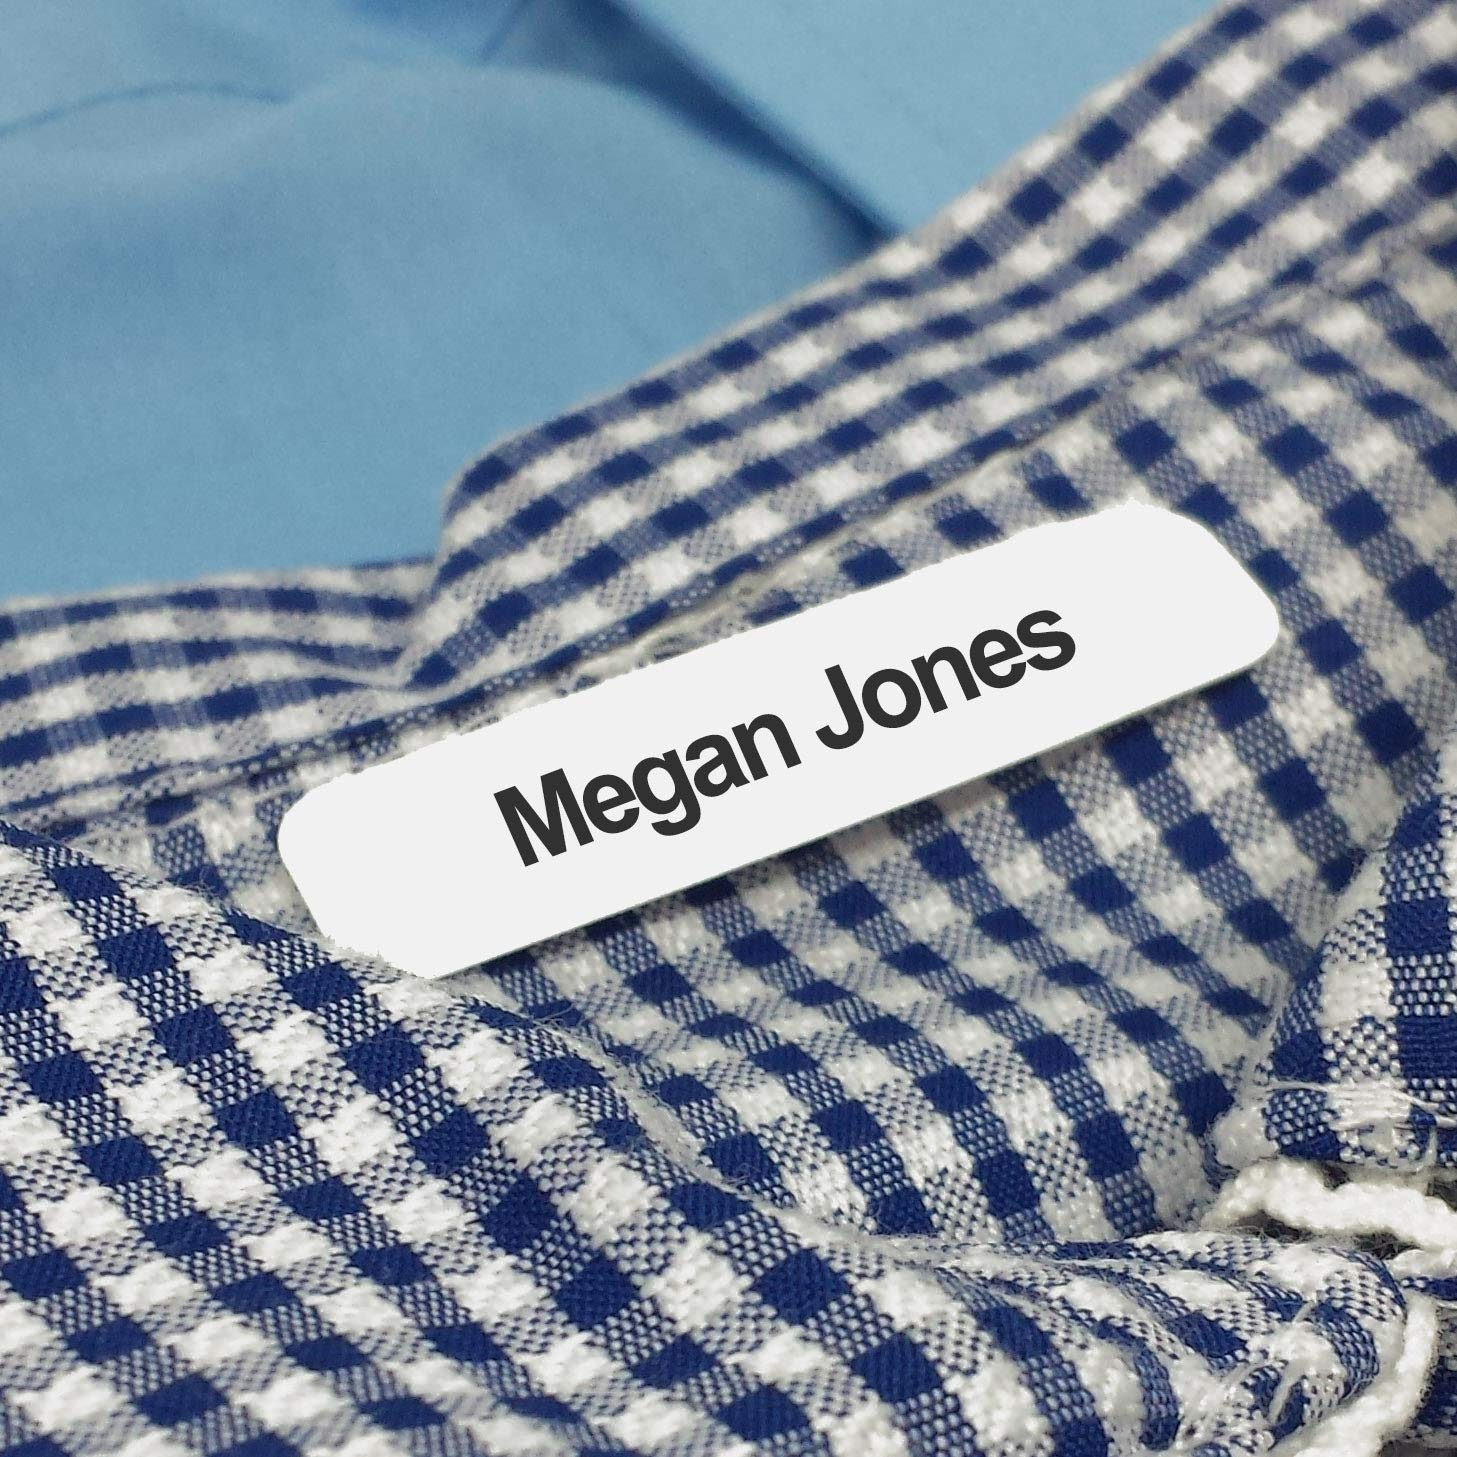 Nursing or Camp 50 Printed Iron-on Name Labels//Tags for School Care